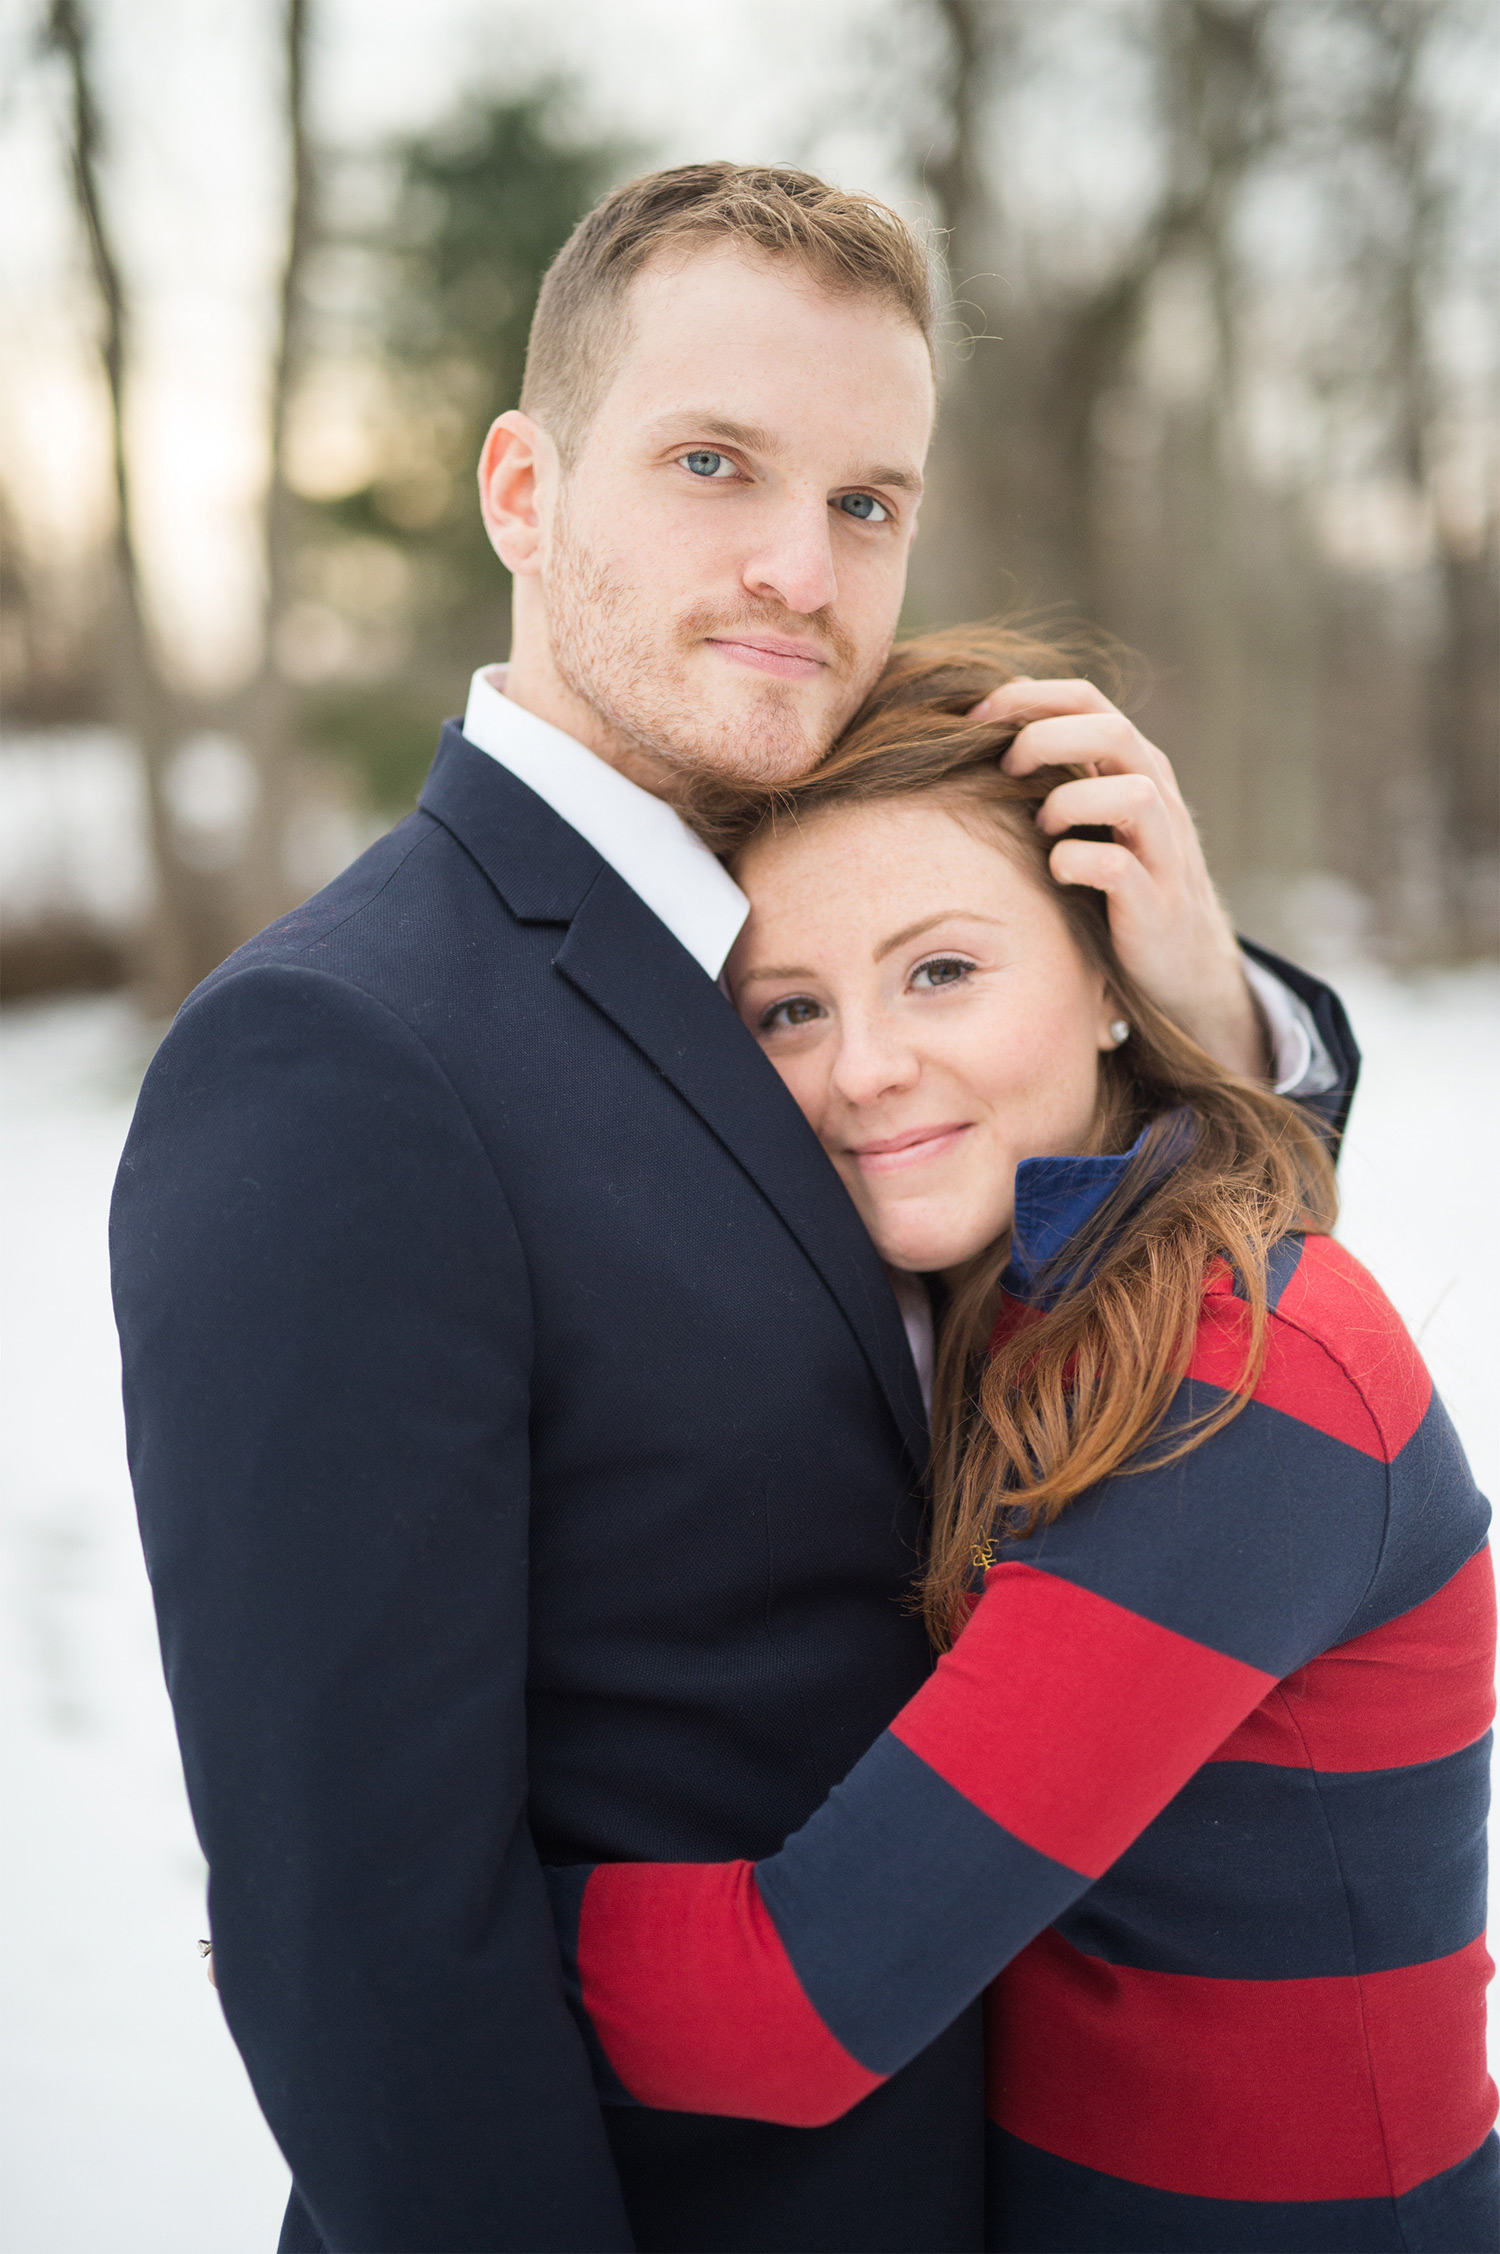 winter-engagement-photographer-boston-14